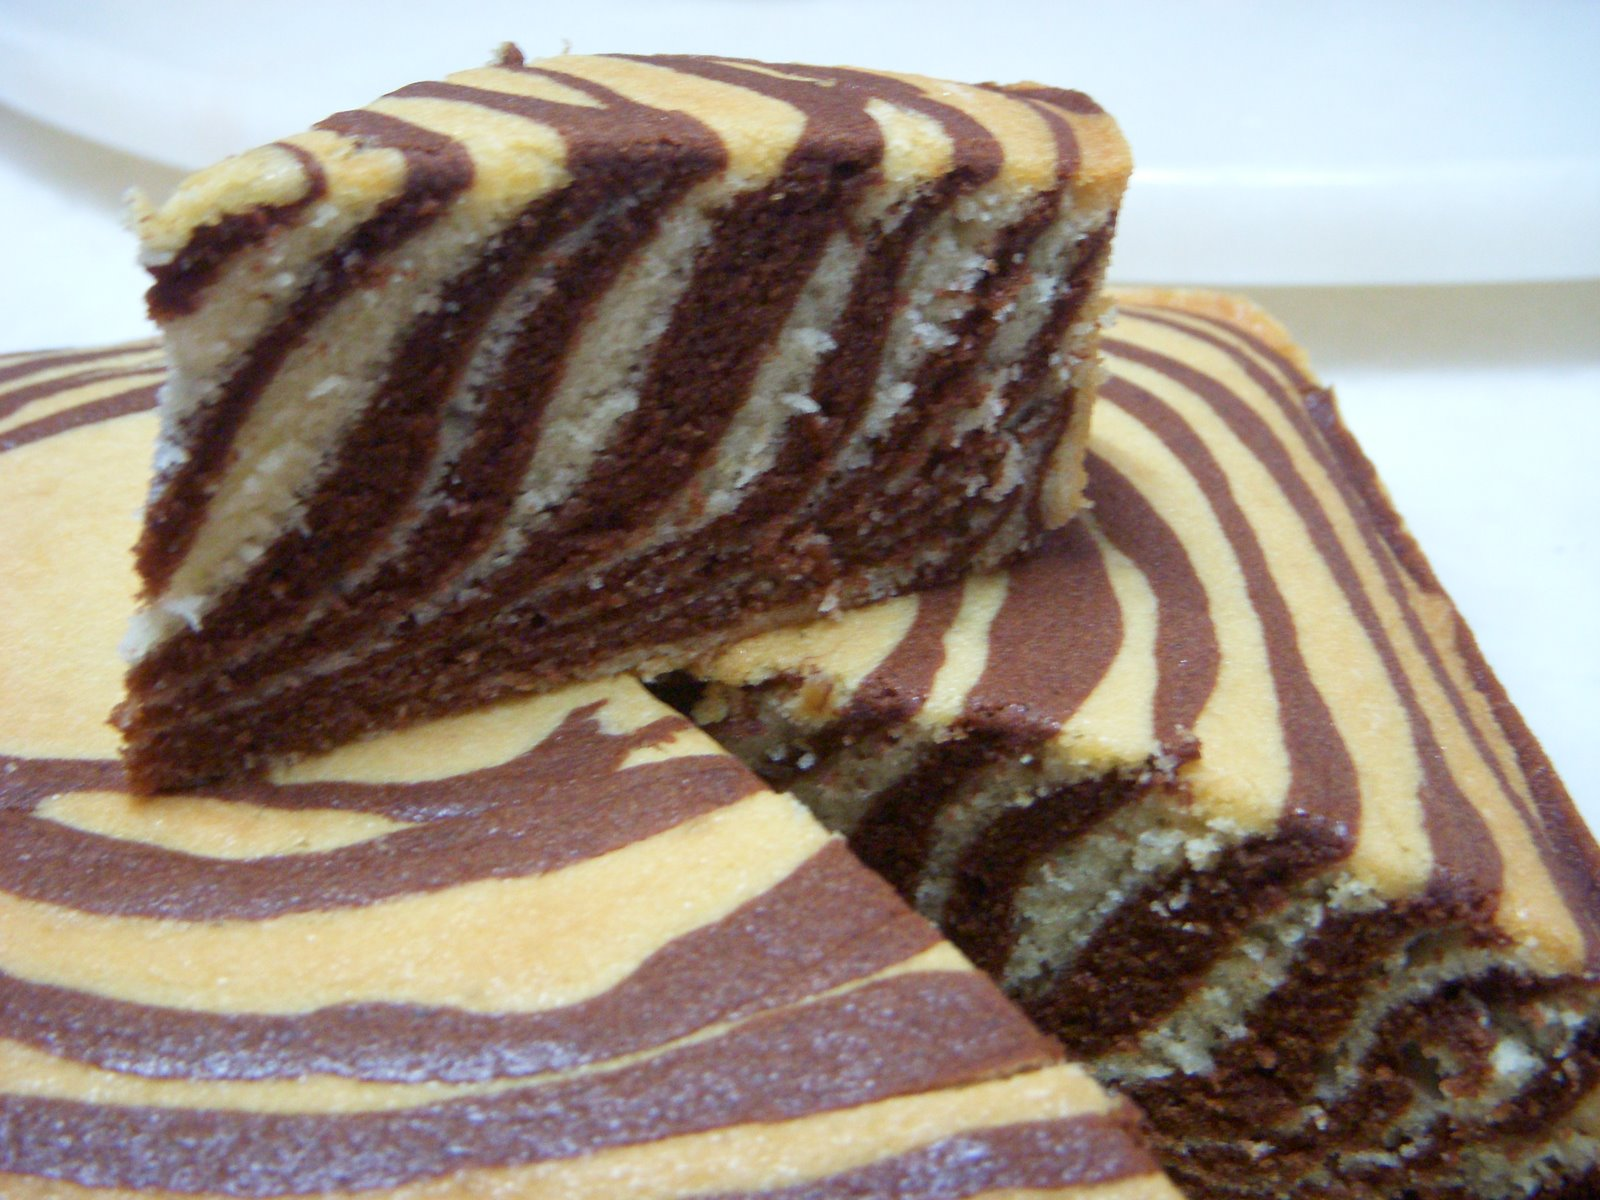 Gambar ihsan http://www.kaboodle.com/reviews/checkerboard-cake-pan